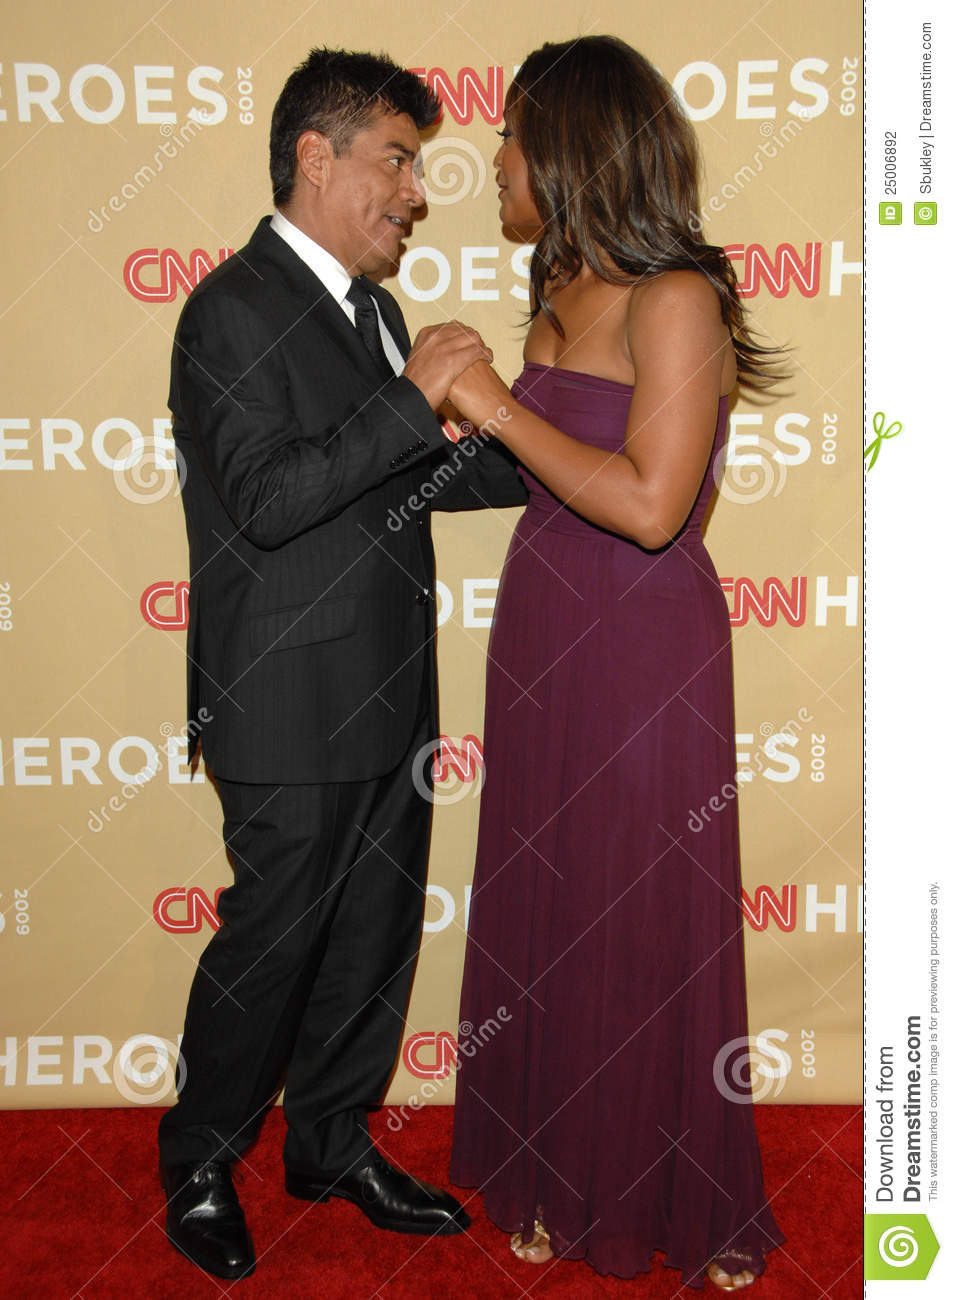 George Lopez,Laila Ali,CNN Heroes Editorial Photography.